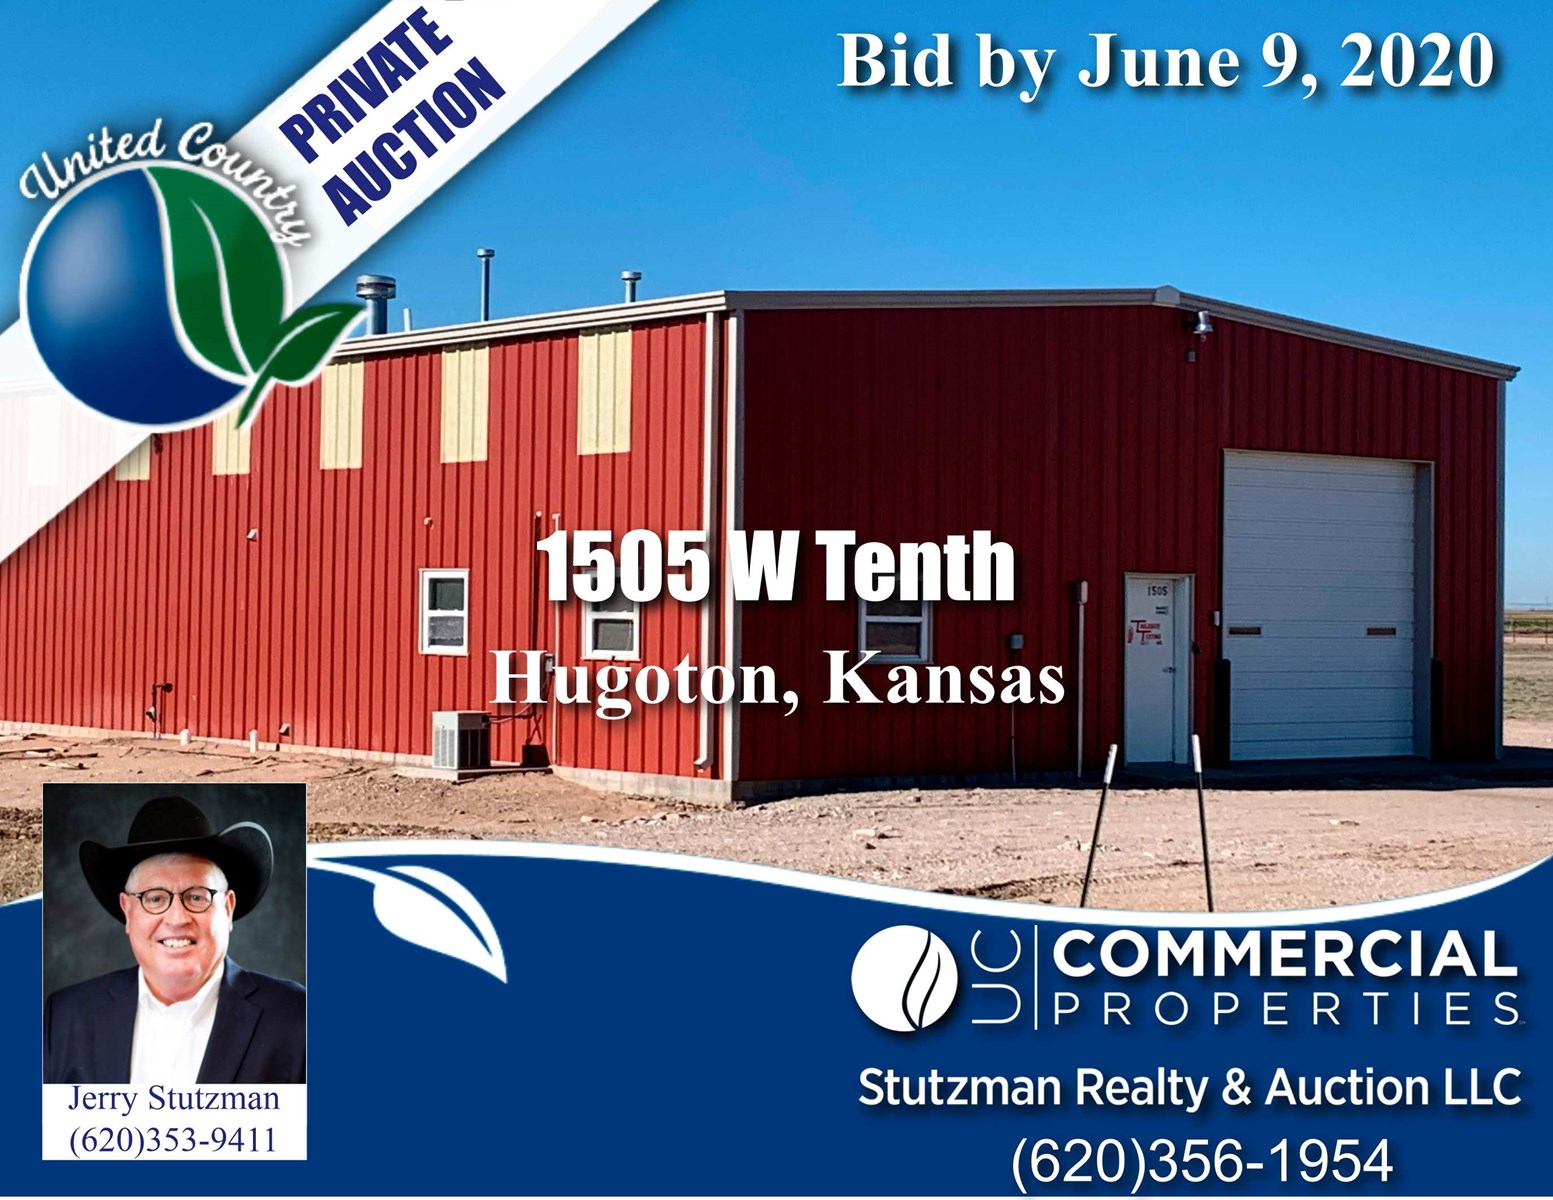 COMMERCIAL PROPERTY IN SW KS UP FOR AUCTION